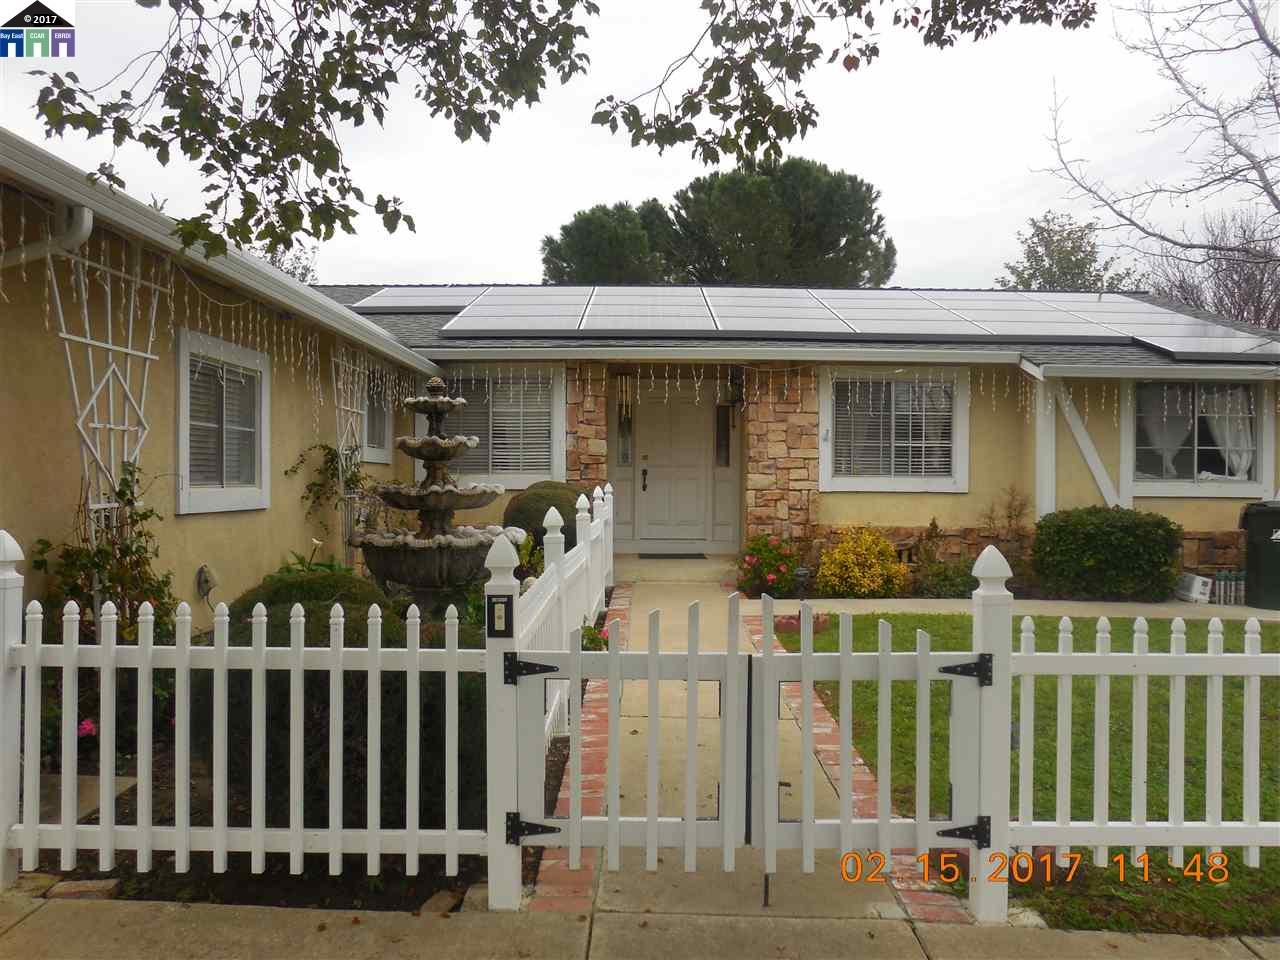 2308 Robles Dr, ANTIOCH, CA 94509